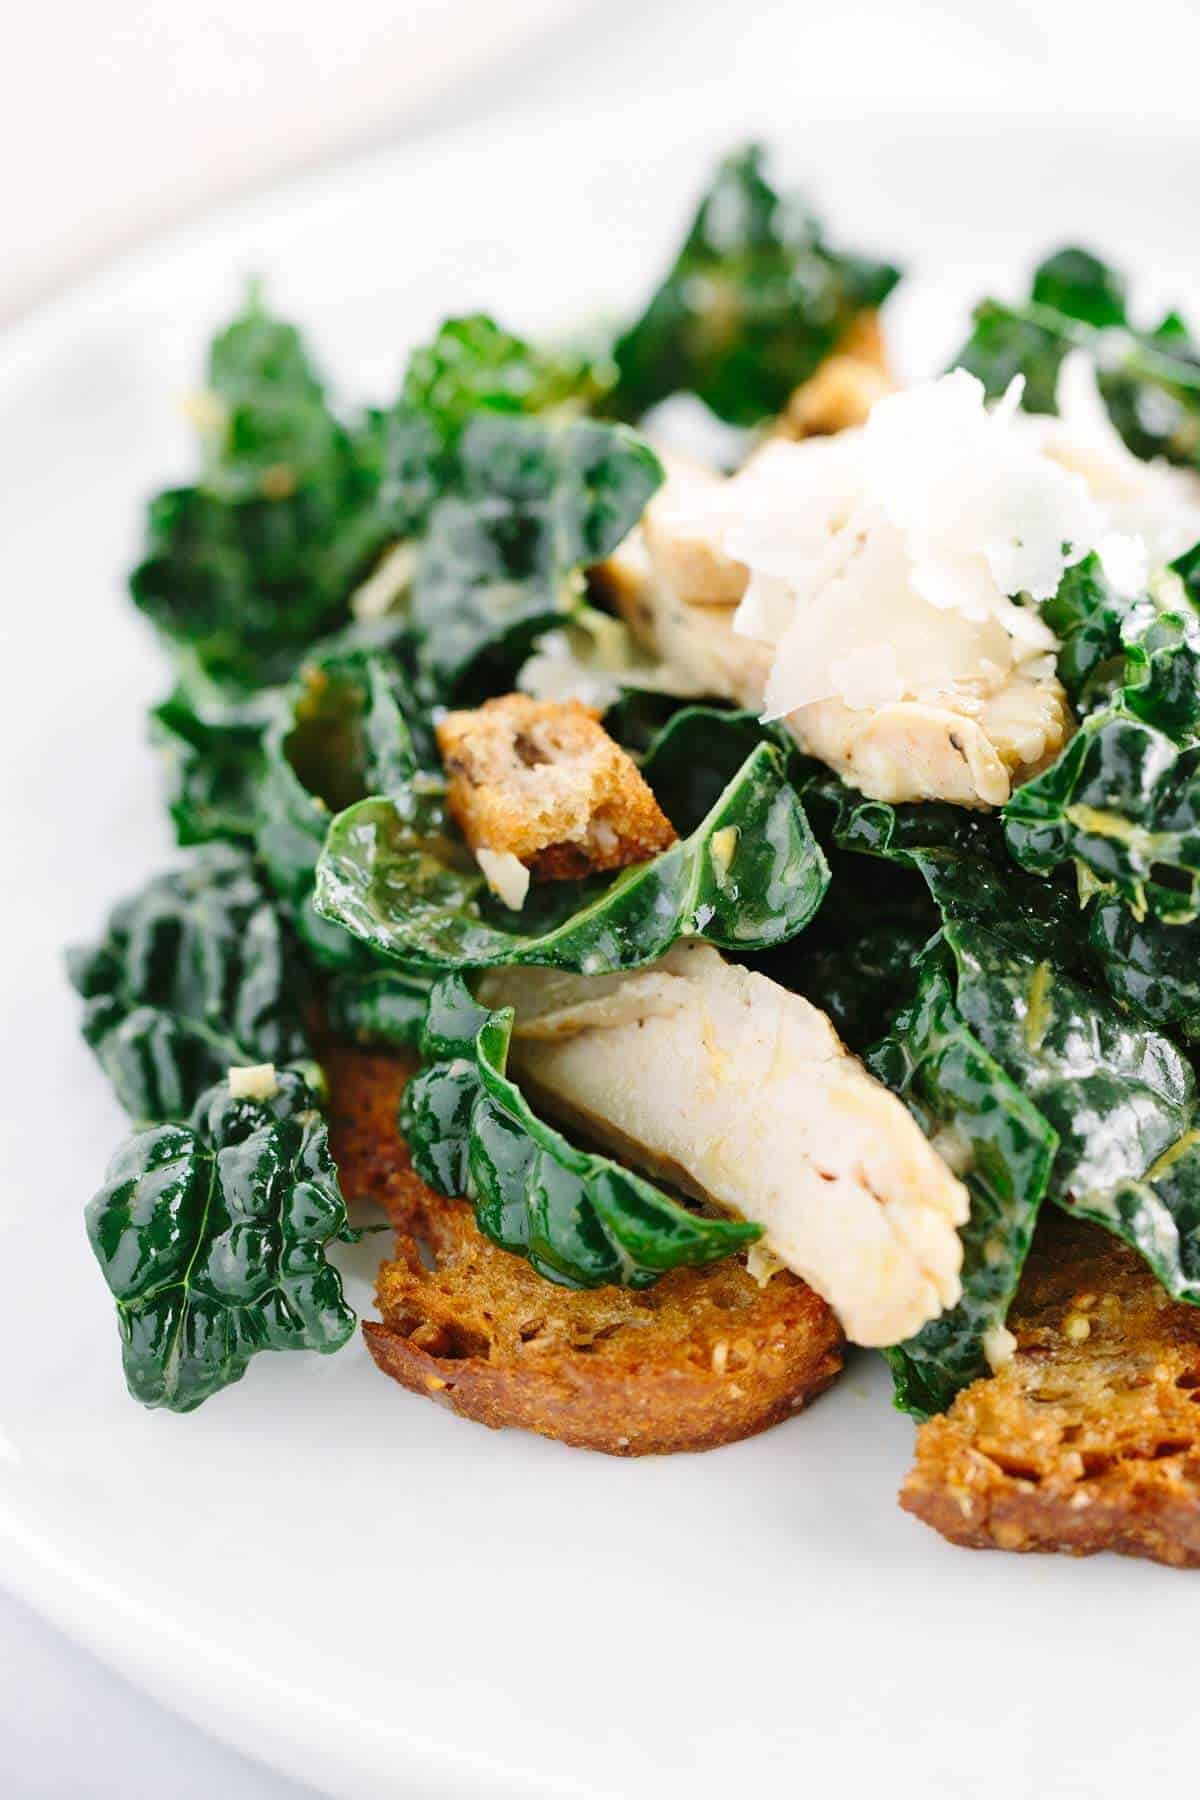 Chicken Kale Caesar Salad with Croutons - Fast and healthy recipe! Tender kale leaves tossed in light lemon anchovy dressing and topped with homemade whole grain croutons. | jessicagavin.com